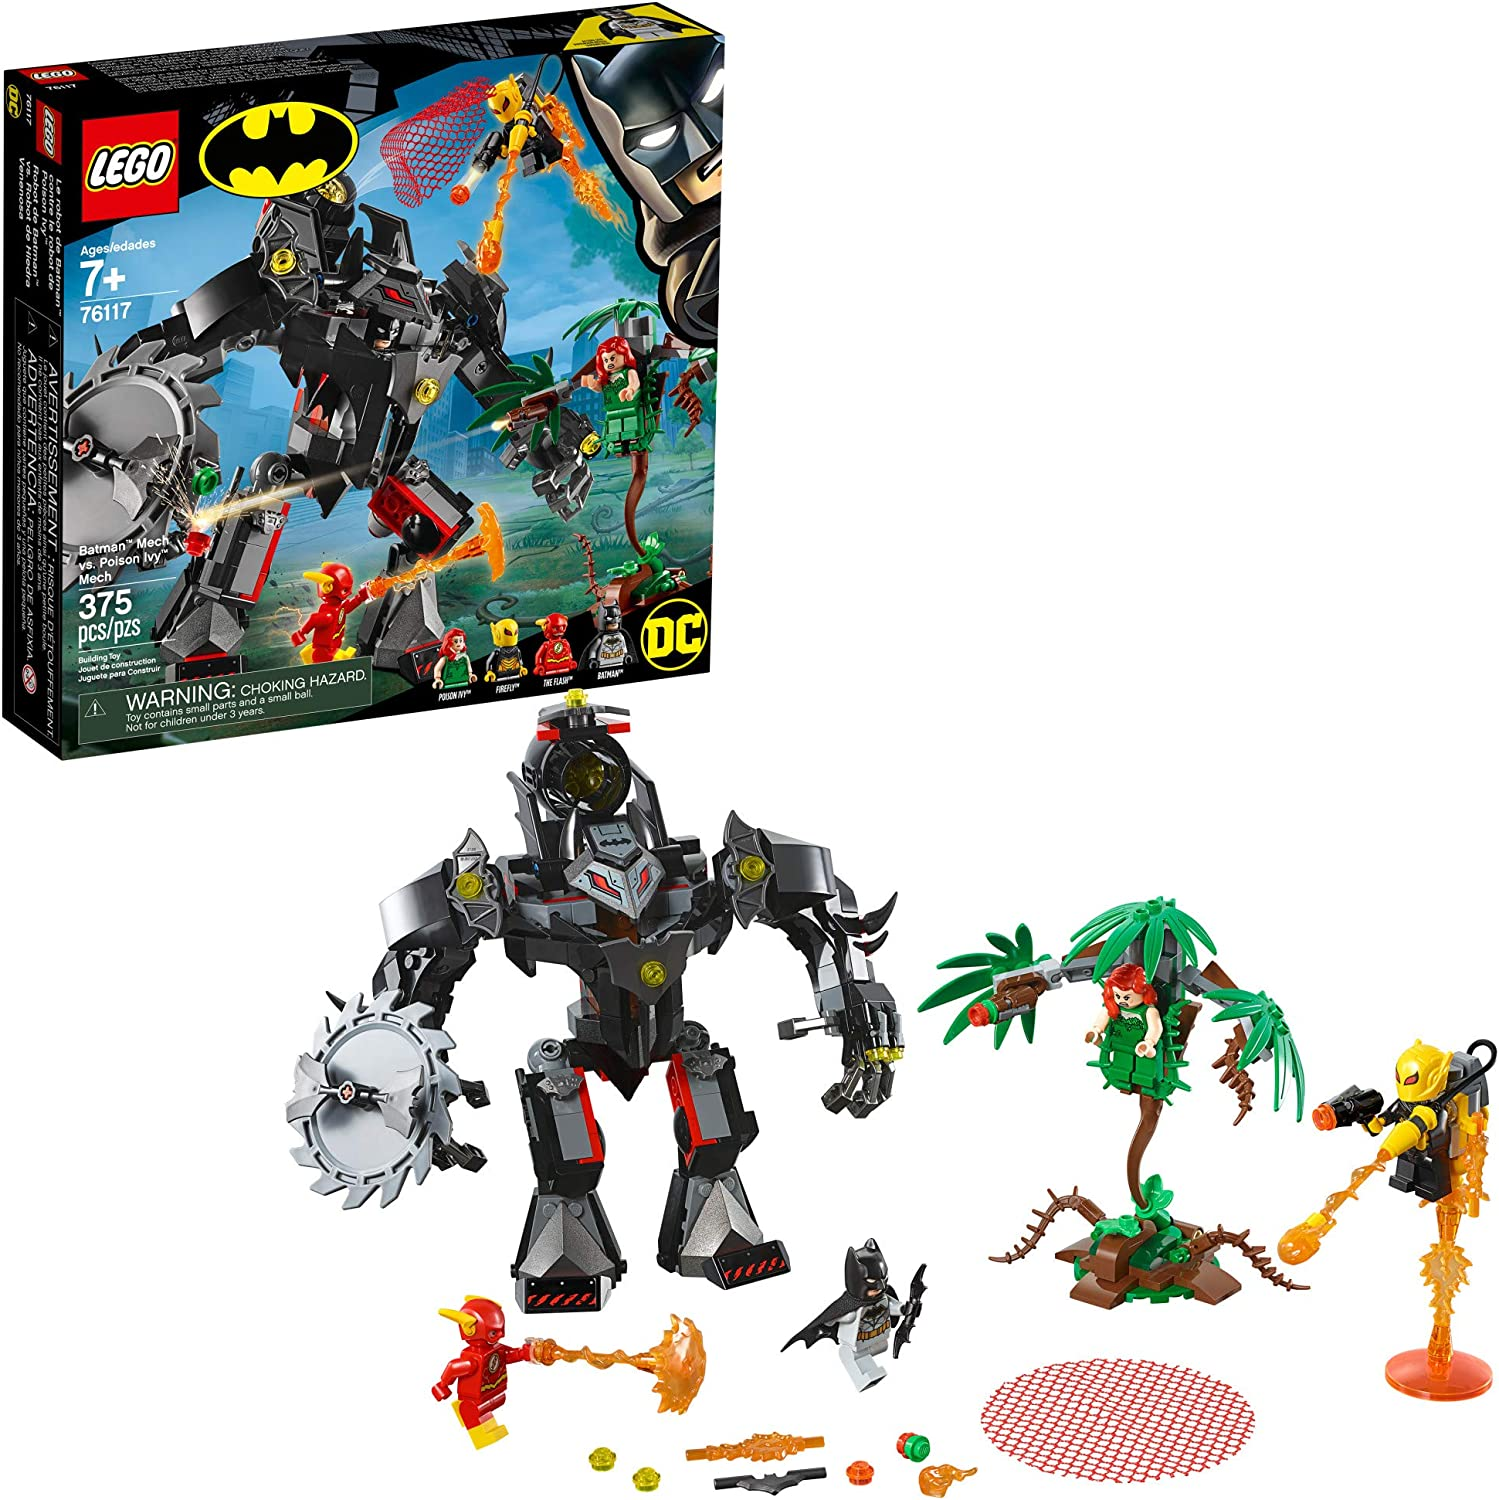 LEGO DC Batman: Batman Mech vs Poison Ivy Mech 76117 Building Kit (375 Pieces)